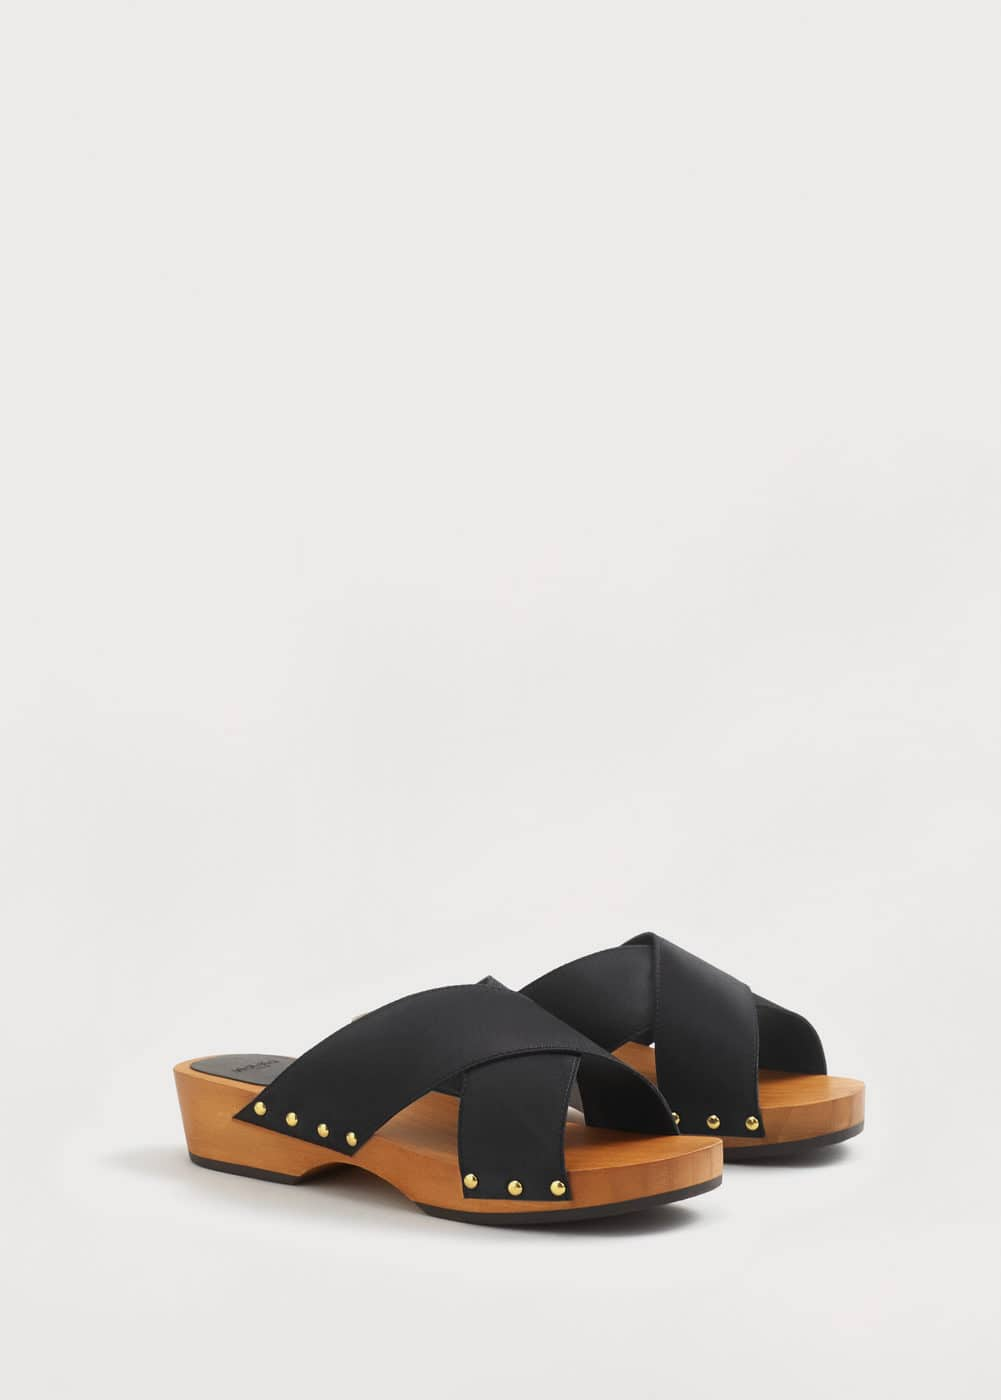 Wooden strapped sandals | VIOLETA BY MANGO